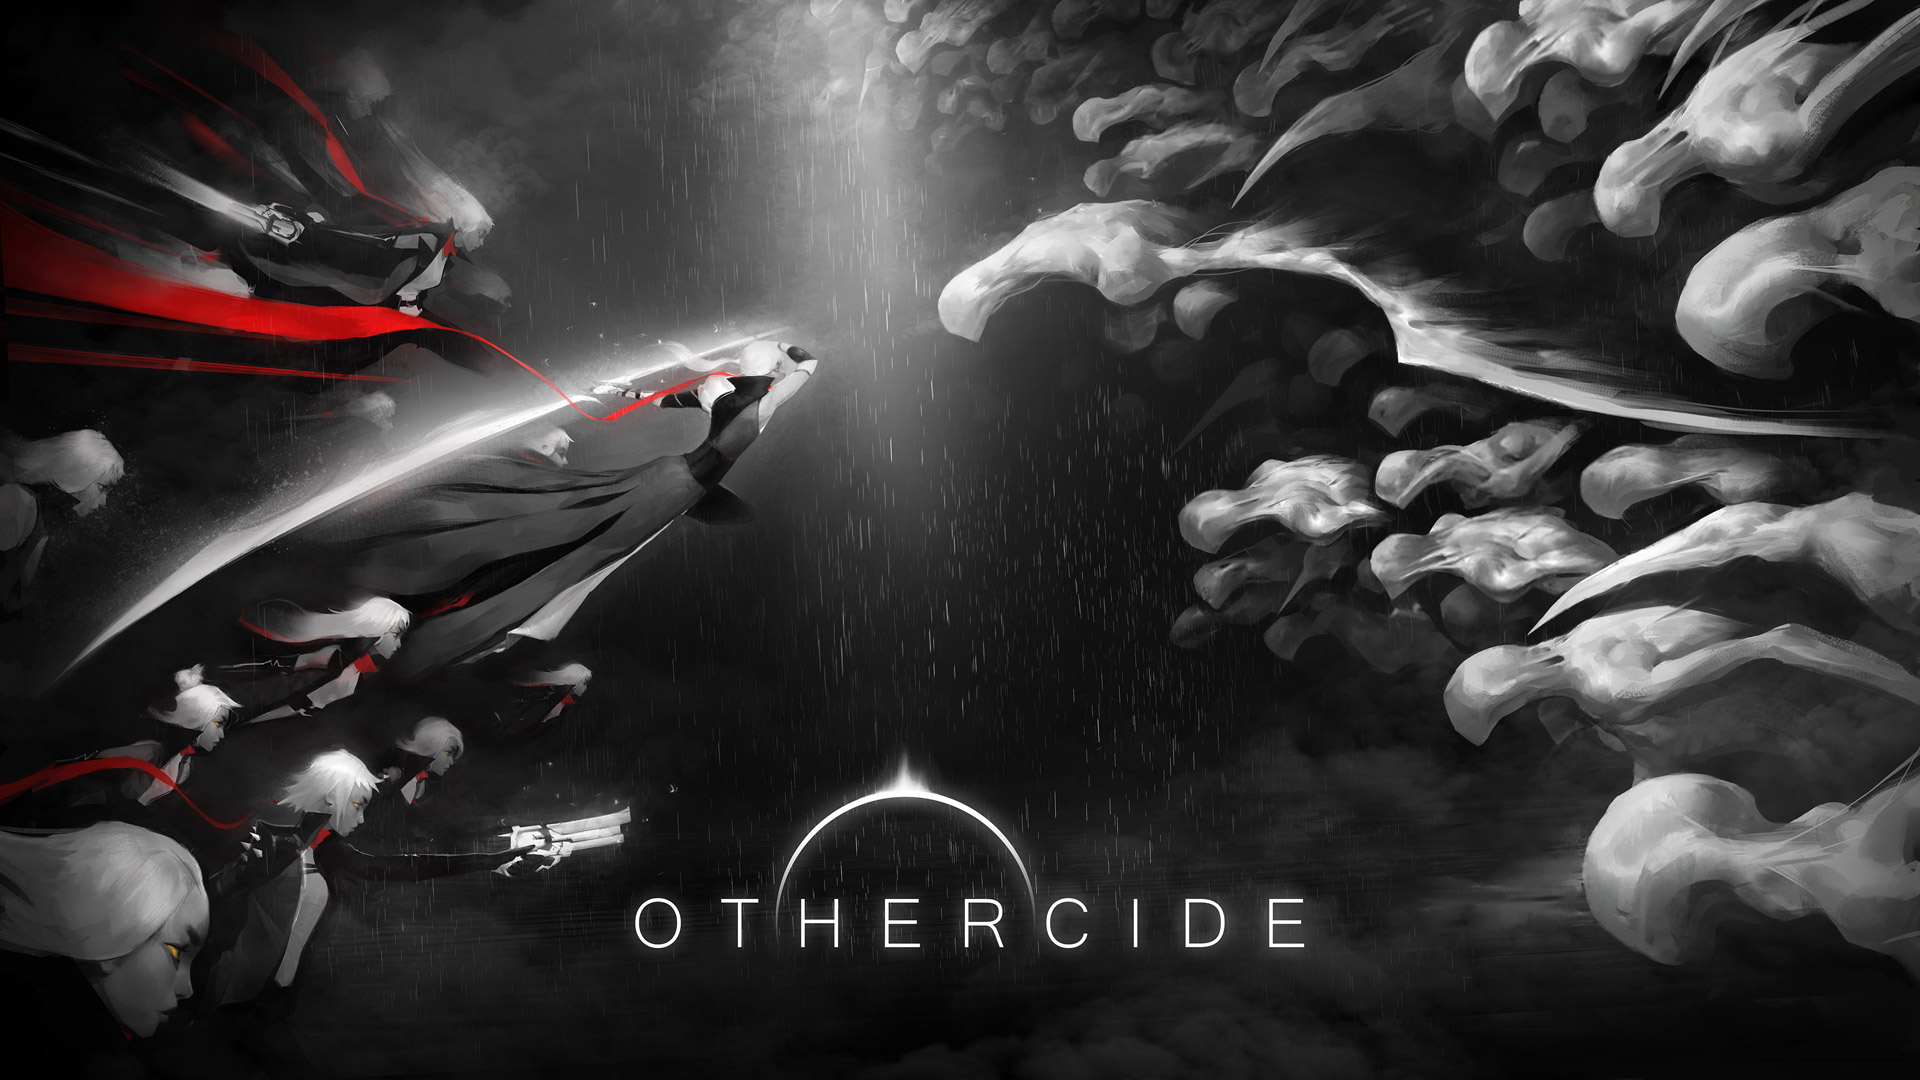 Free Othercide Wallpaper in 1920x1080